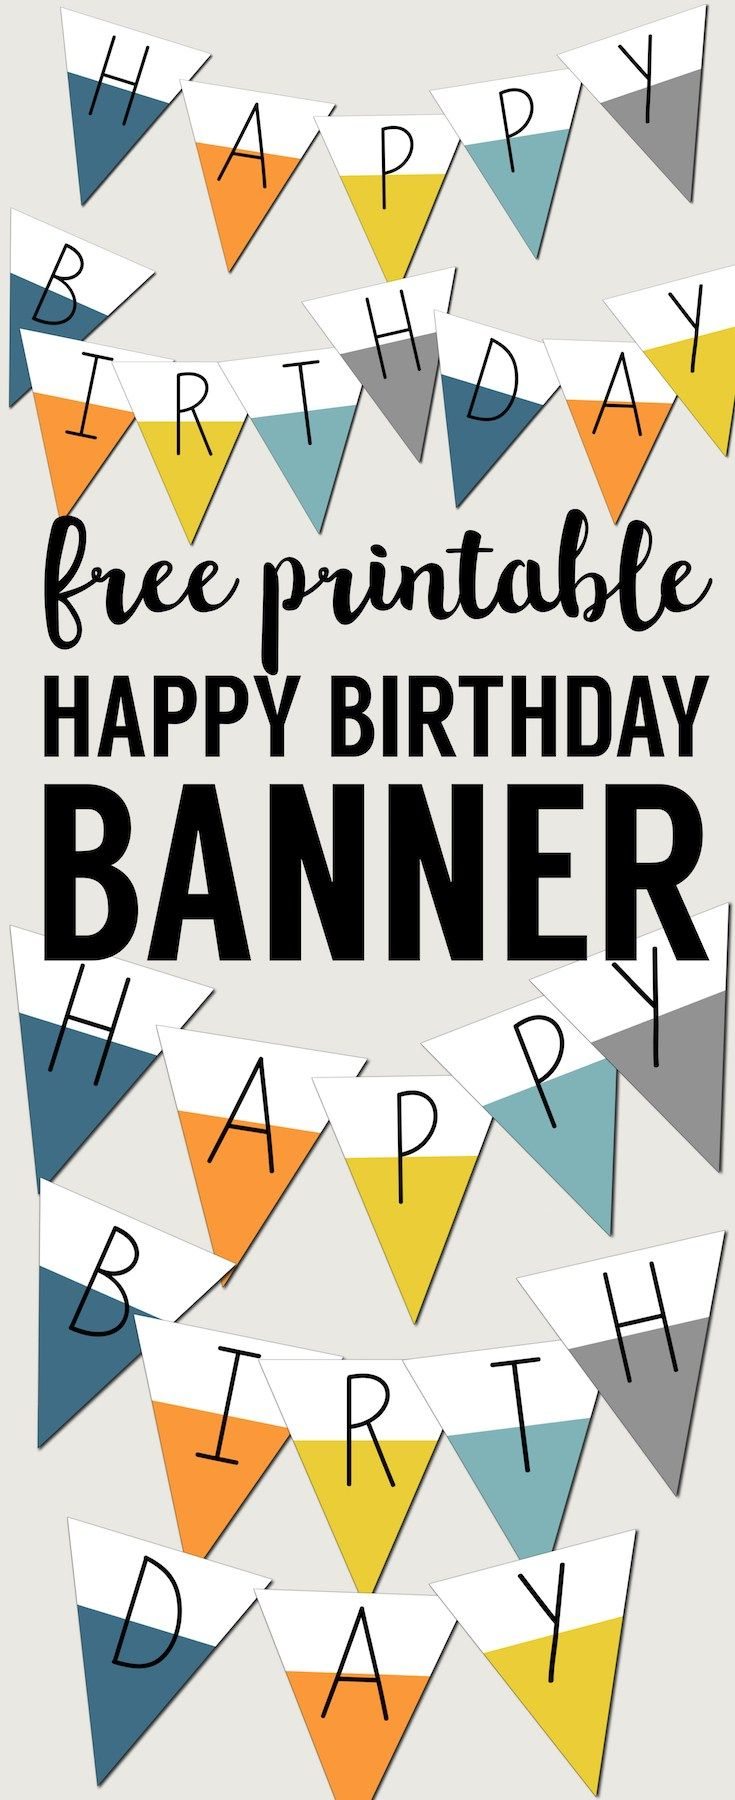 Free Printable Happy Birthday Banner | Preschool | Birthday, Happy - Free Printable Happy Birthday Signs